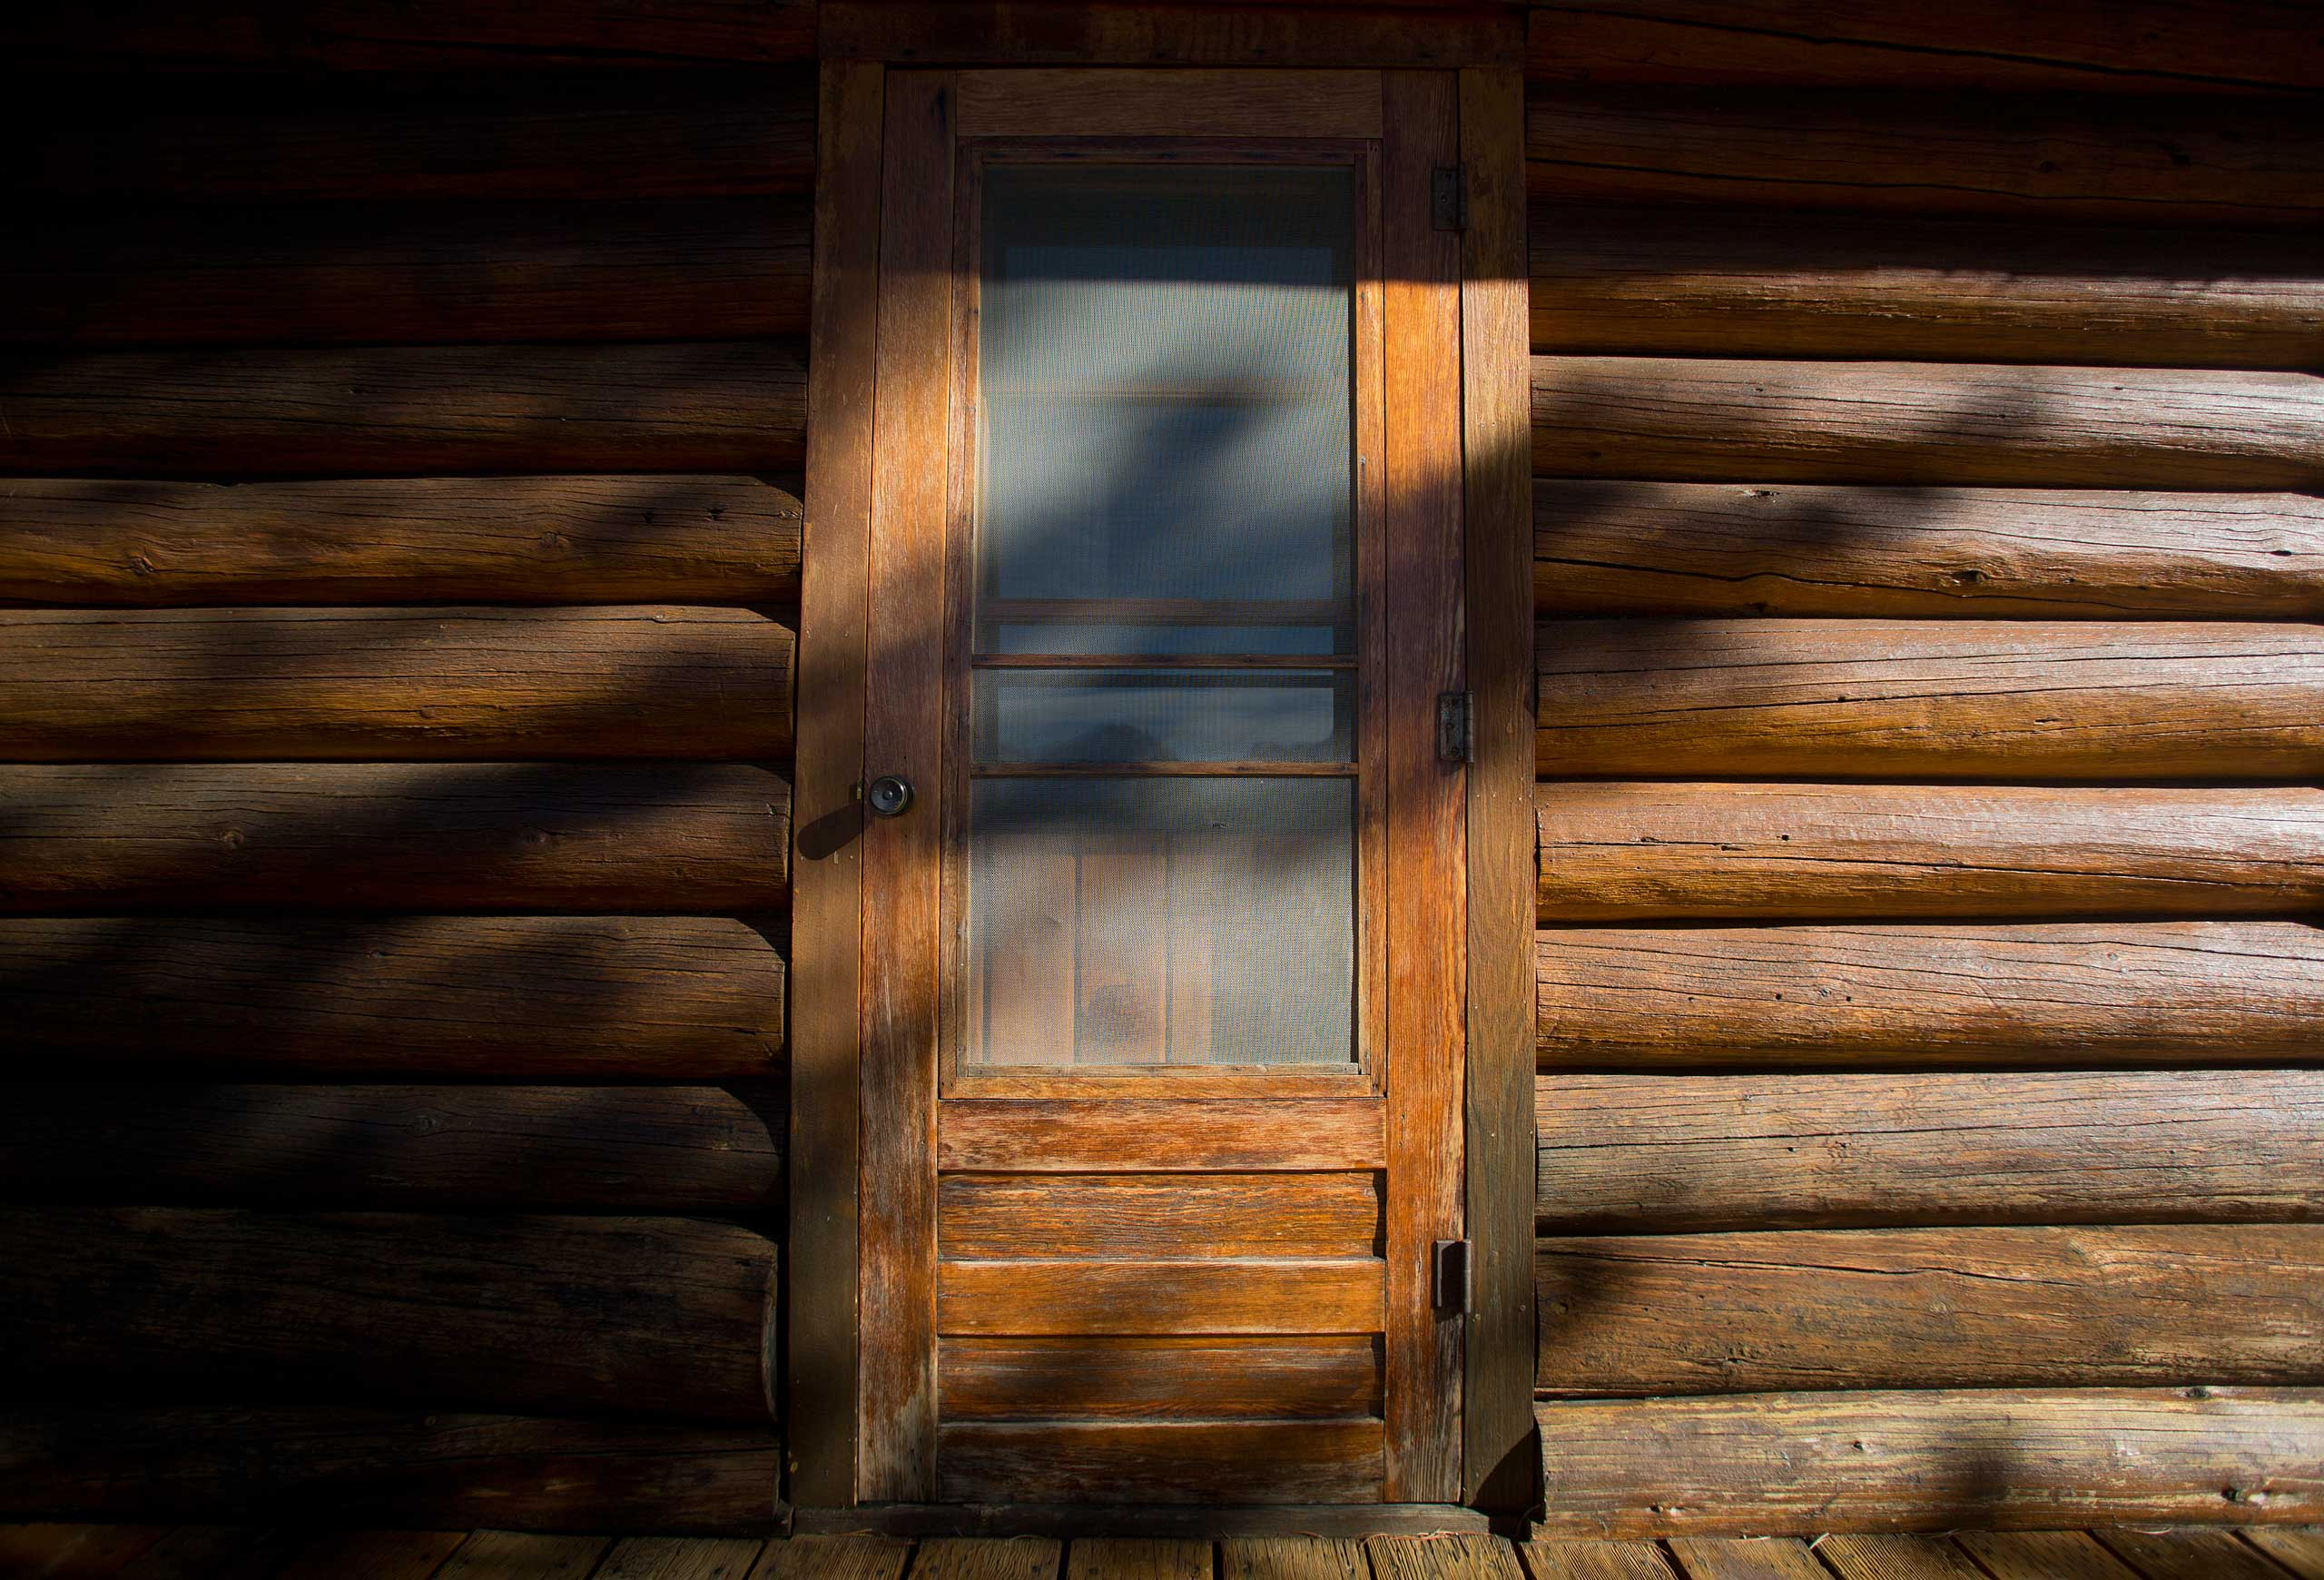 A doorway on the Brinkerhoff Cabin on the shore of Jackson Lake in Grand Teton National Park outside Jackson, Wyo. on Oct. 28, 2014.